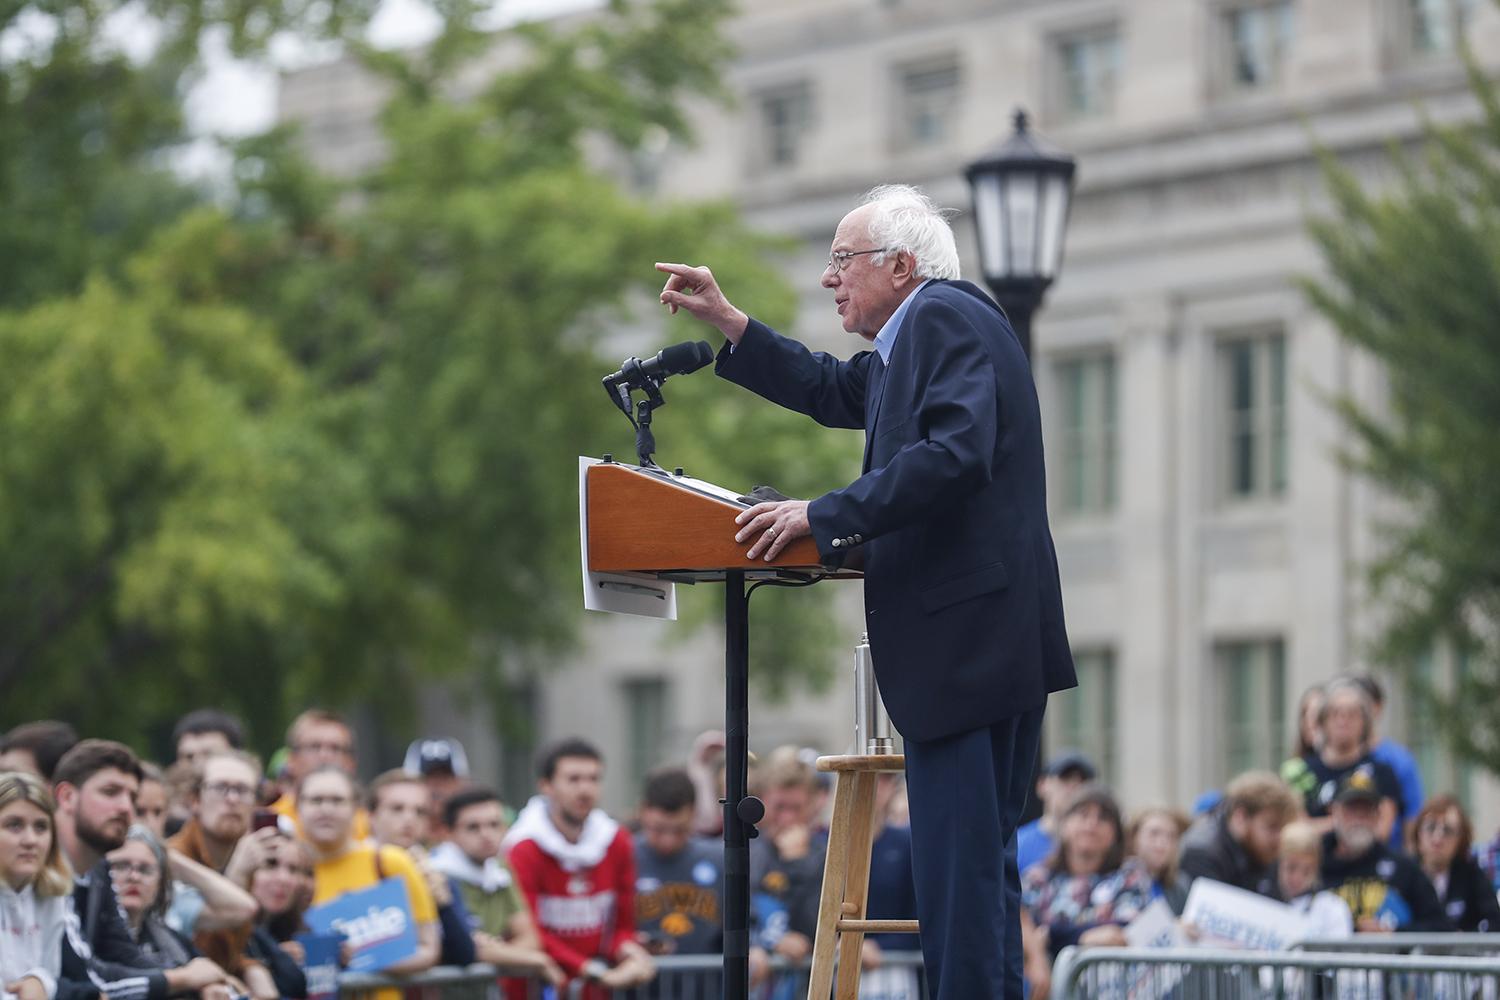 2020+Democratic+candidate+Sen.+Bernie+Sanders%2C+I-Vt%2C+speaks+during+the+Bernie+2020+College+Campus+Tailgate+Tour+on+The+Old+Capitol+lawn+on+Sunday%2C+September+8%2C+2019.+